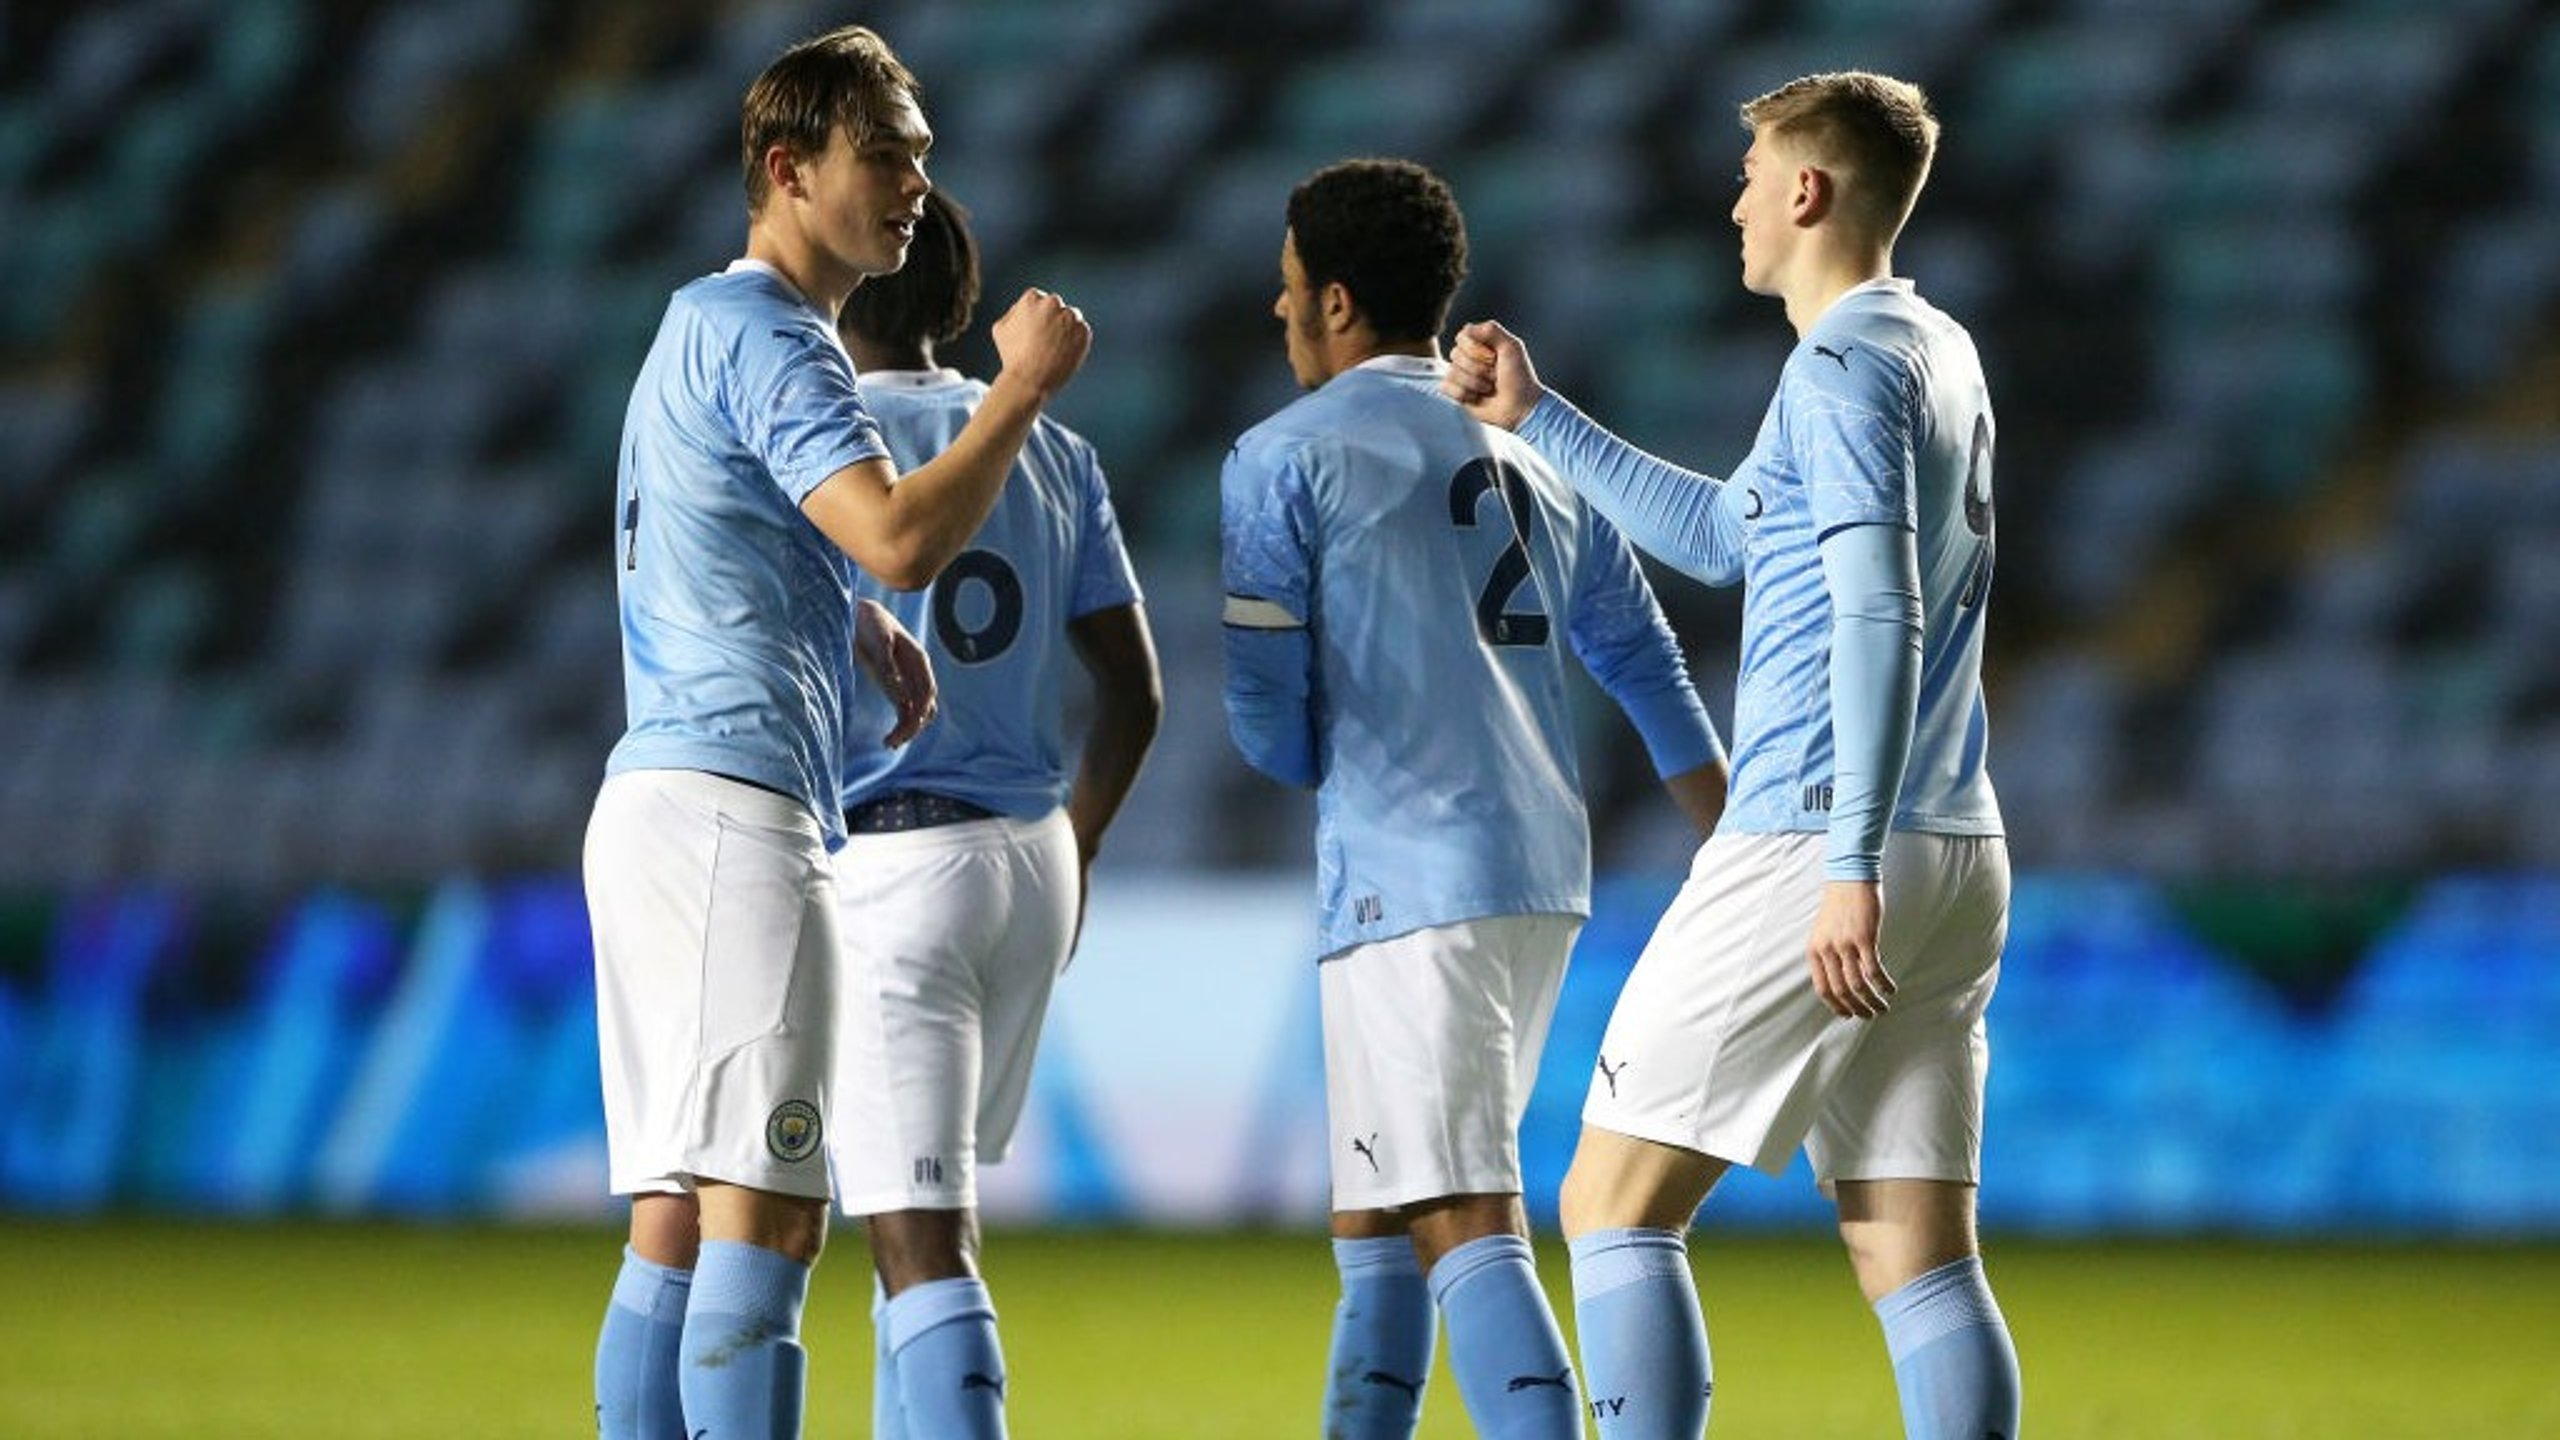 Delightful Delap effort helps City ease into FA Youth Cup fourth round